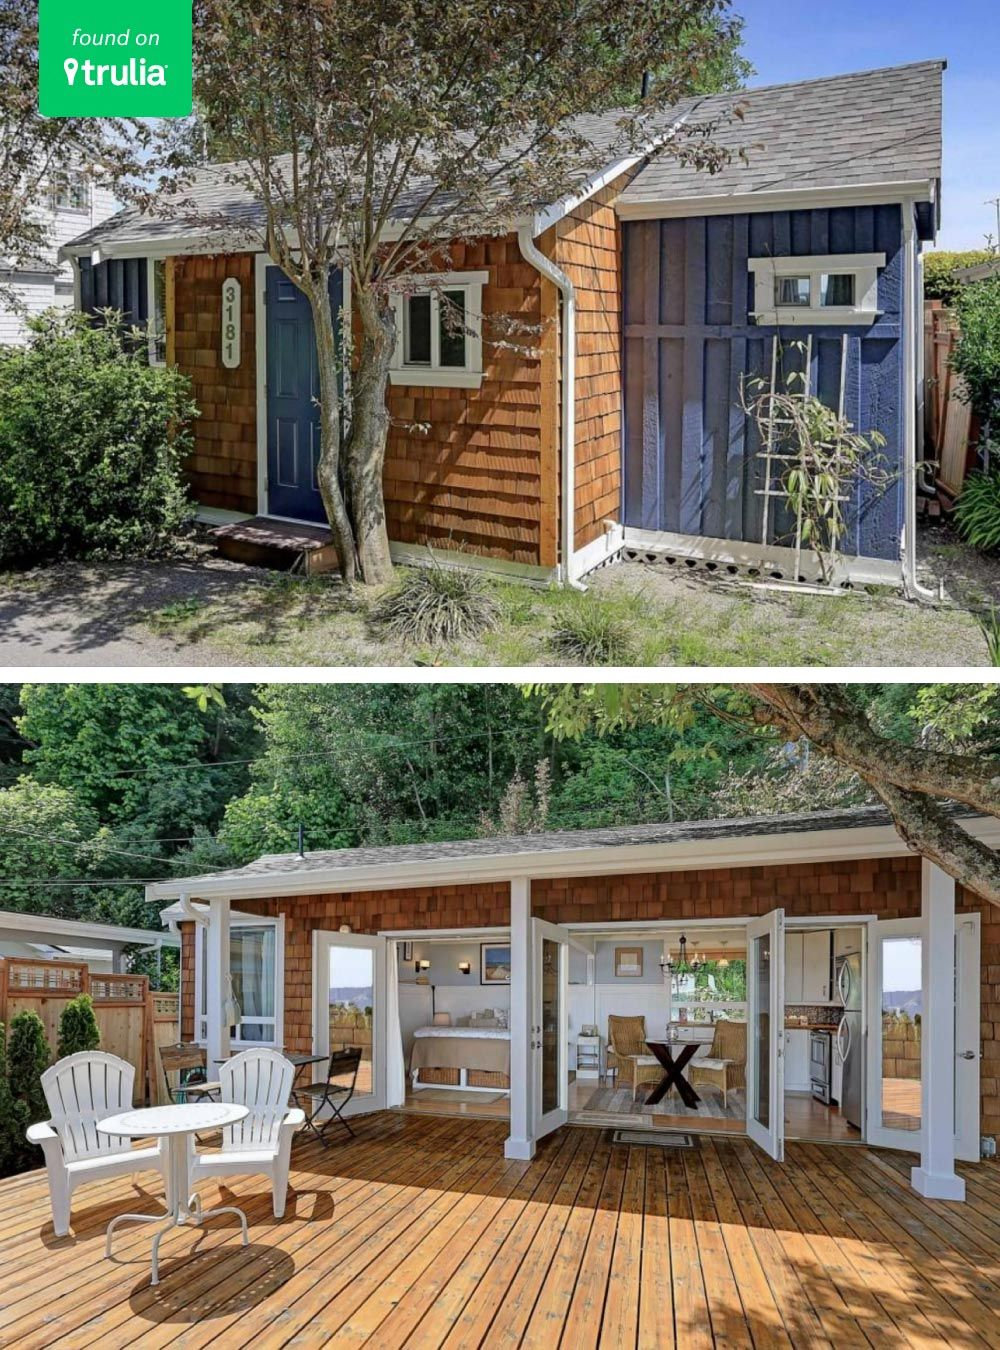 5 Little Houses Under 500 Square Feet Life At Home Trulia Blog Little Houses Little Houses For Sale Tiny House